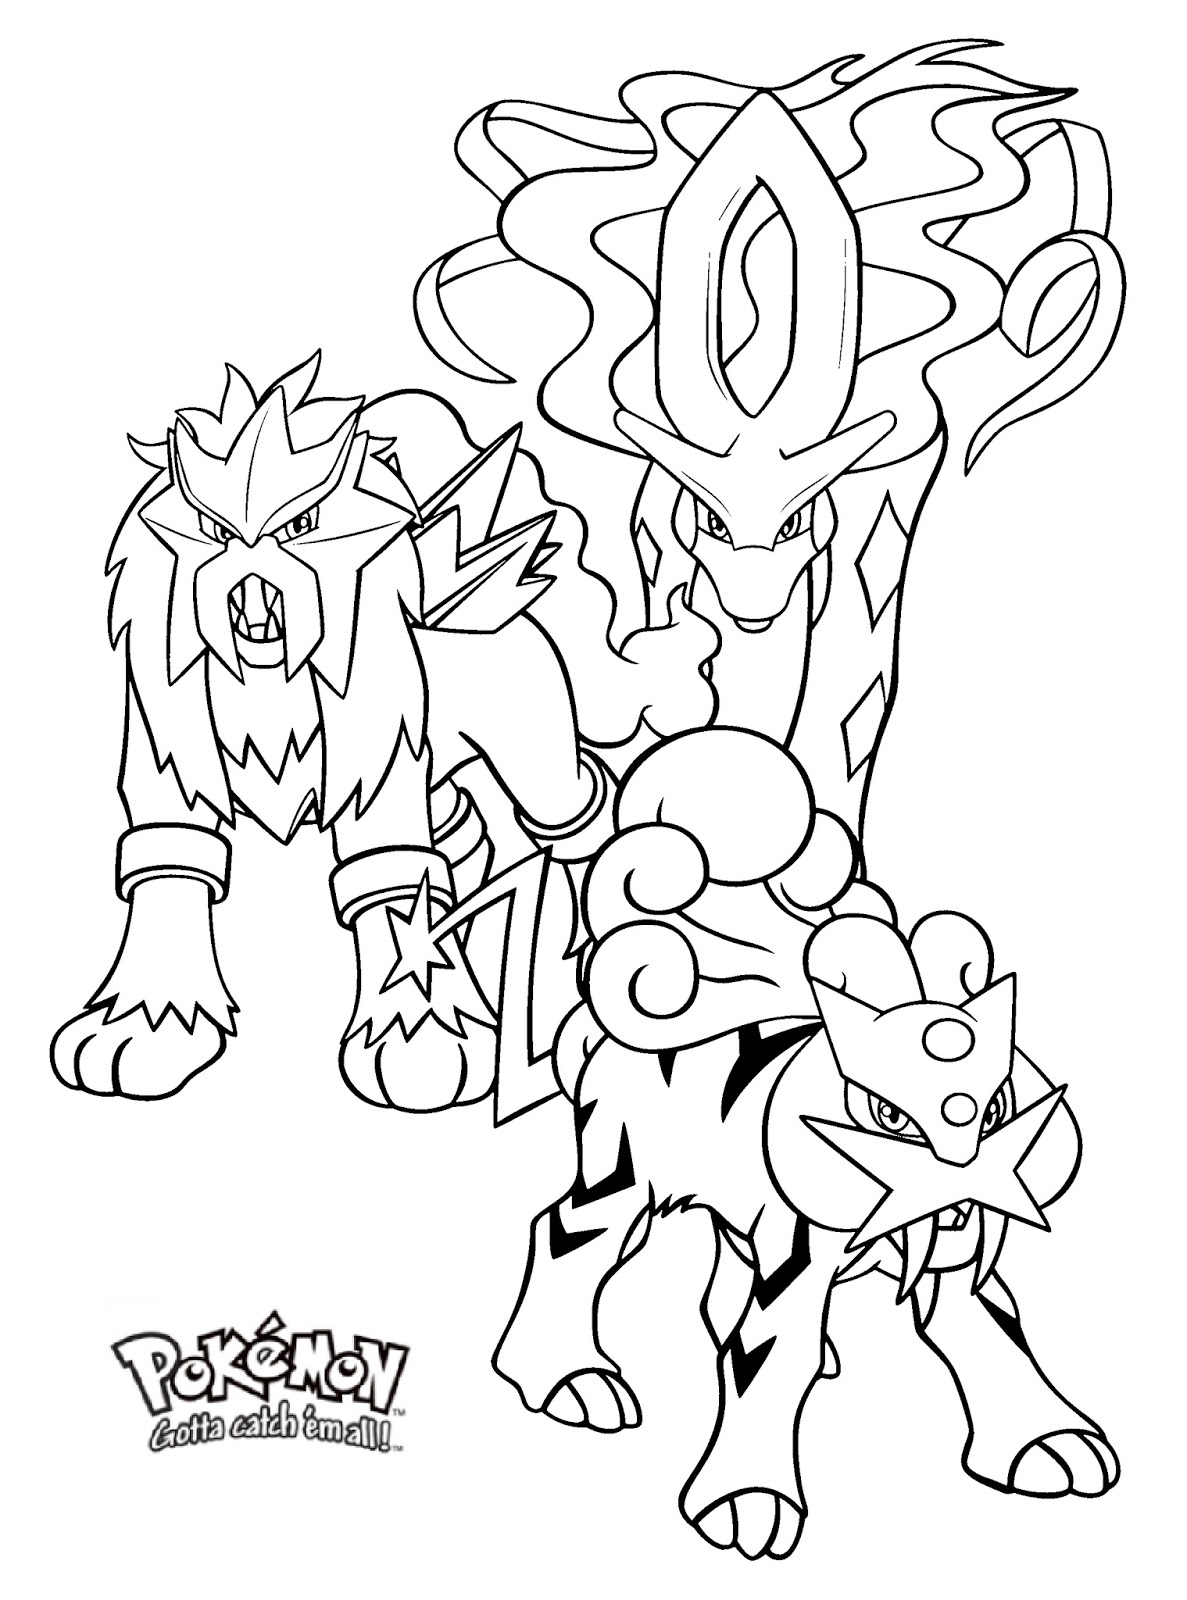 coloring pages pokemon legendary free legendary pokemon coloring pages for kids pokemon legendary coloring pages